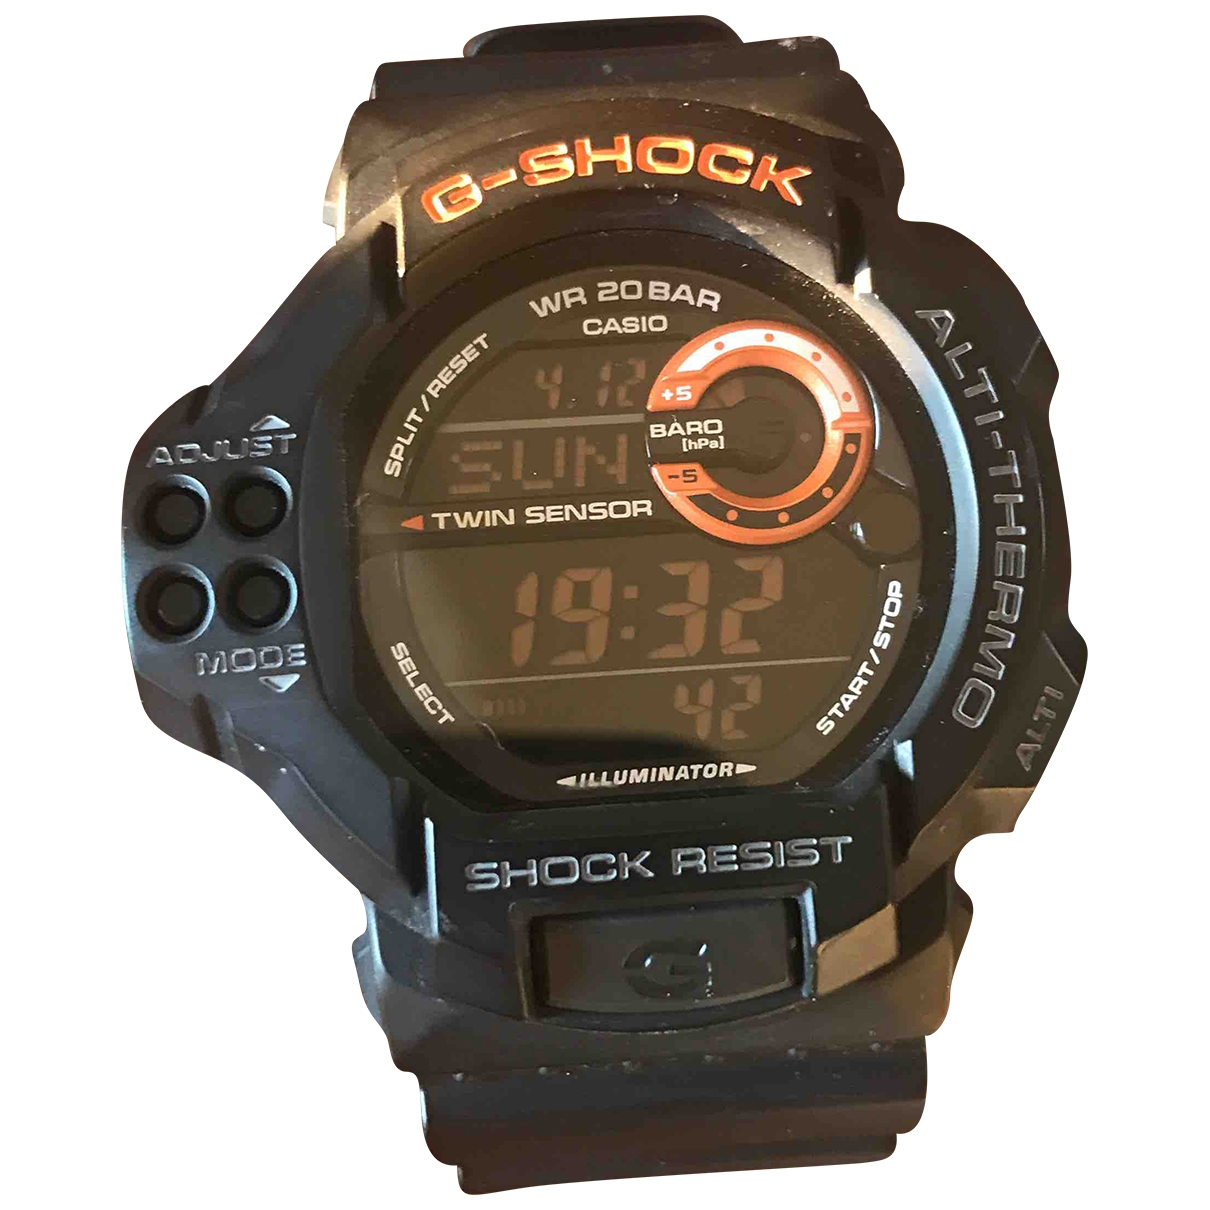 G-shock \N Black Steel watch for Men \N